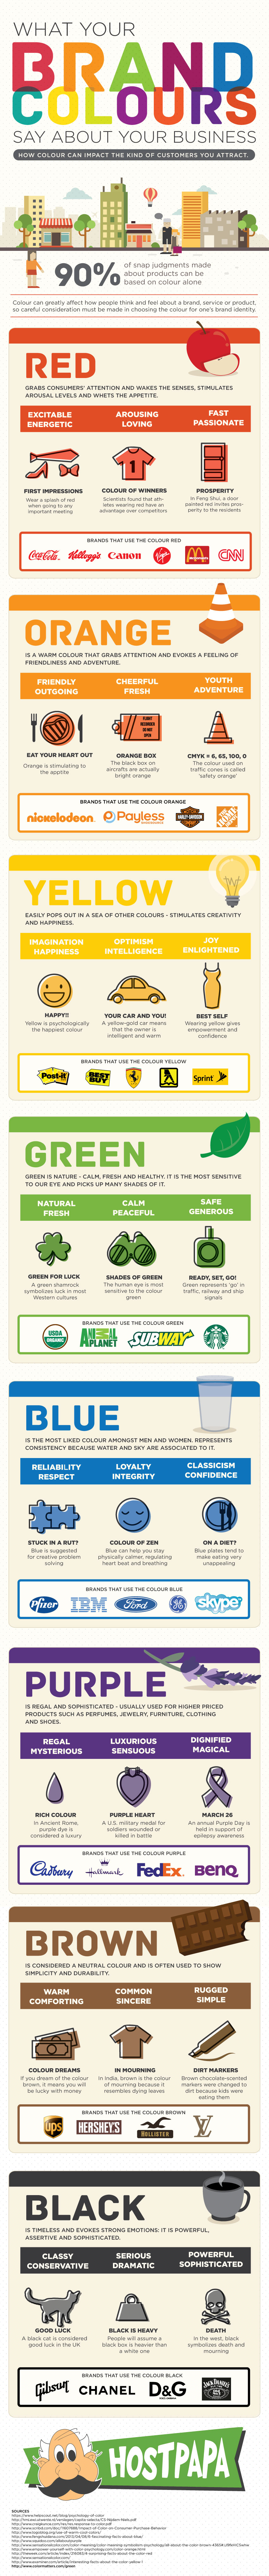 WHAT YOUR BRAND COLOURS SAY ABOUT YOUR BUSINESS? #INFOGRAPHIC